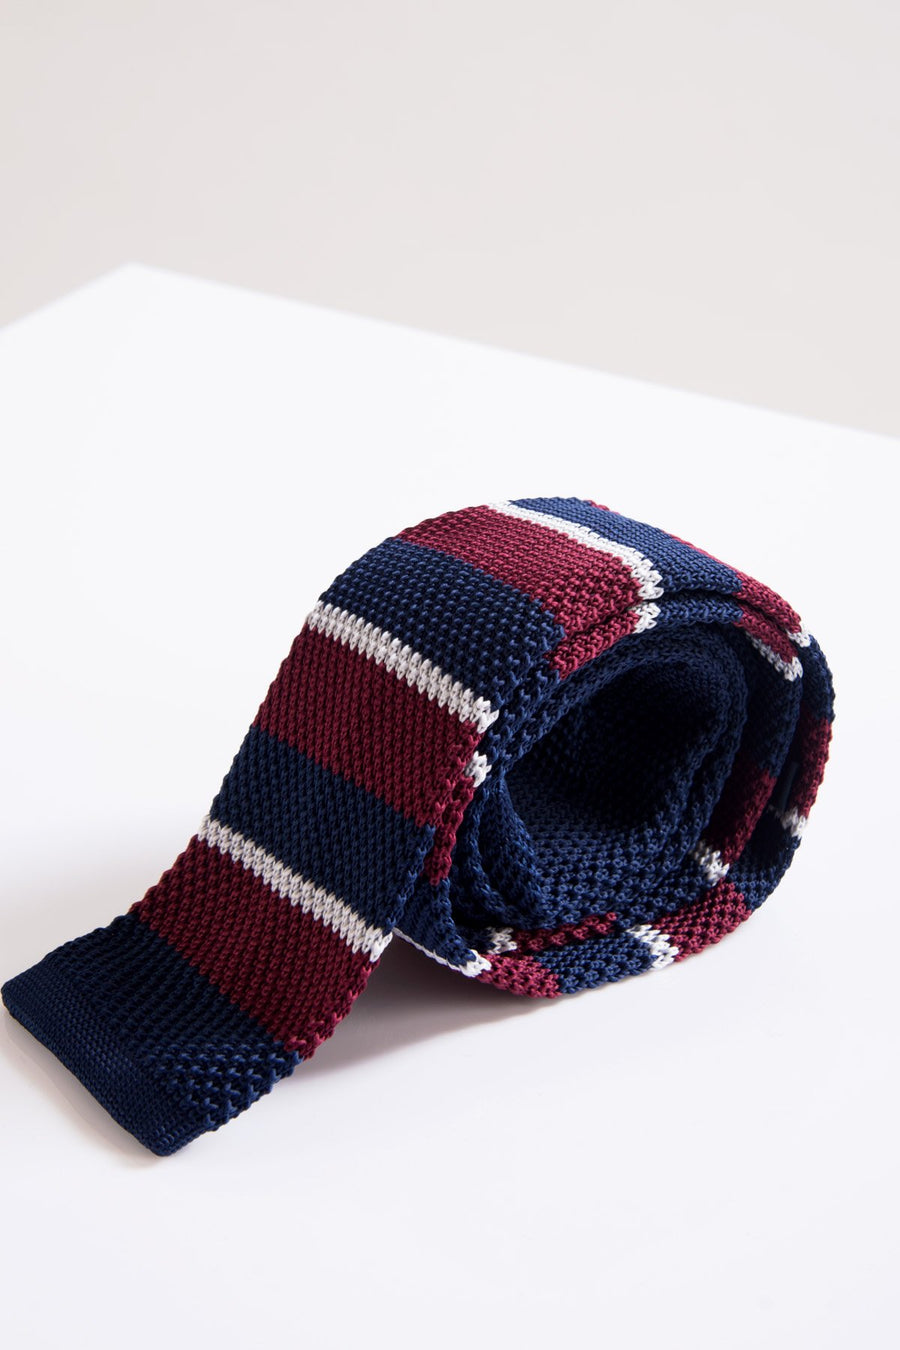 KT Wine & Navy Striped Knitted Tie - Wedding Suit Direct